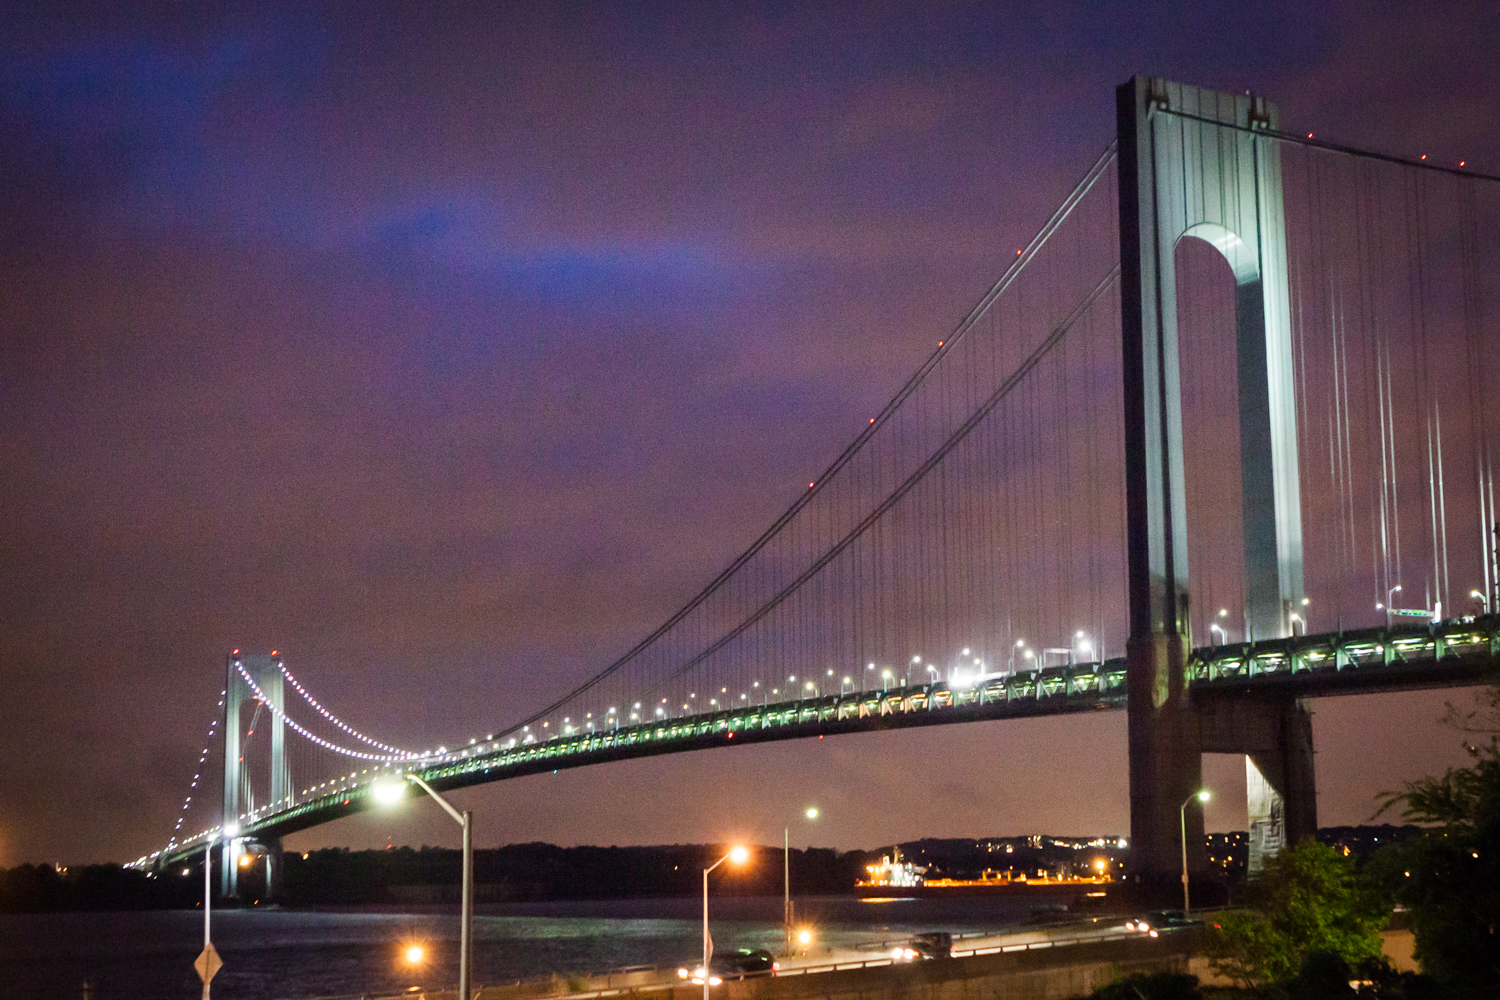 View of the Verrazzano-Narrows Bridge at night